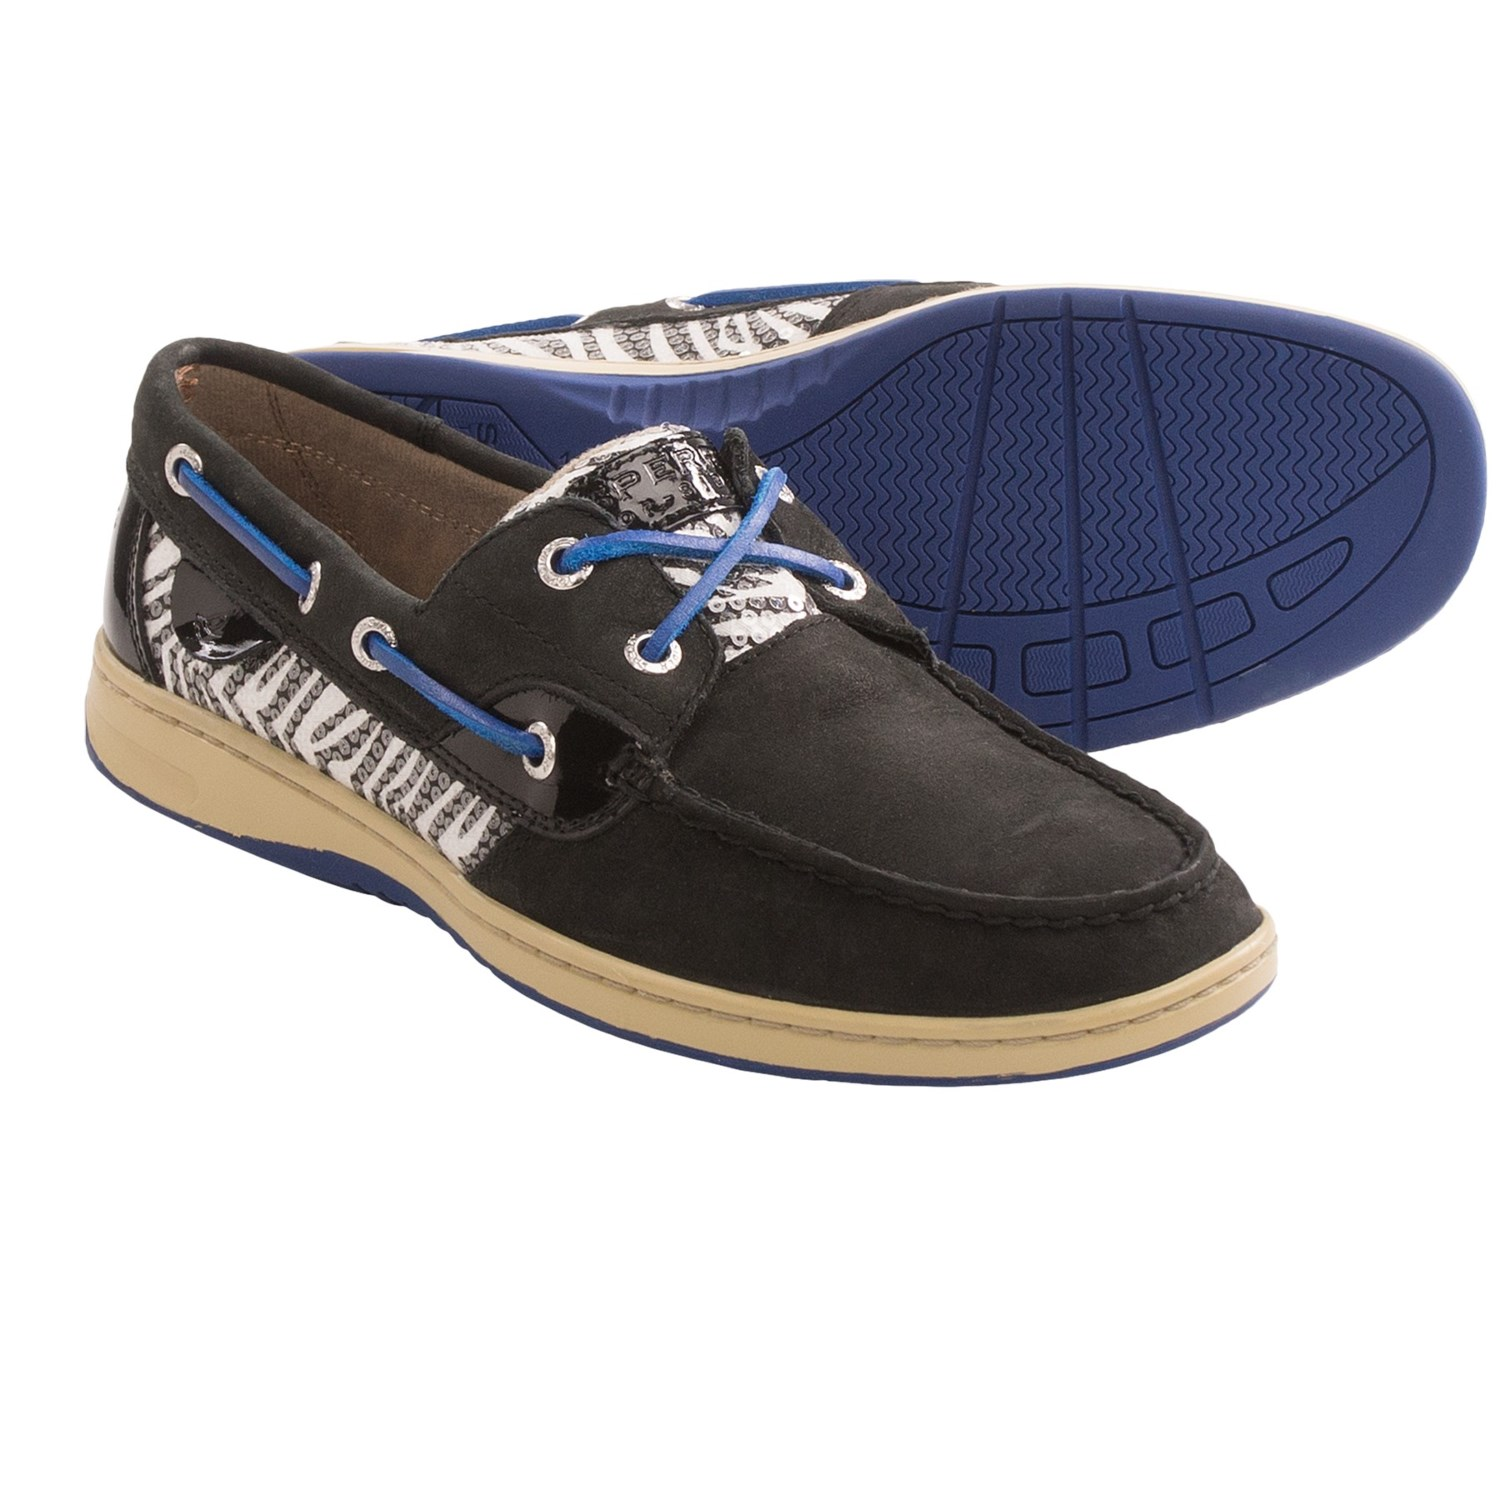 Sperry Top-Sider Women's Bluefish Boat Shoe,Black,5